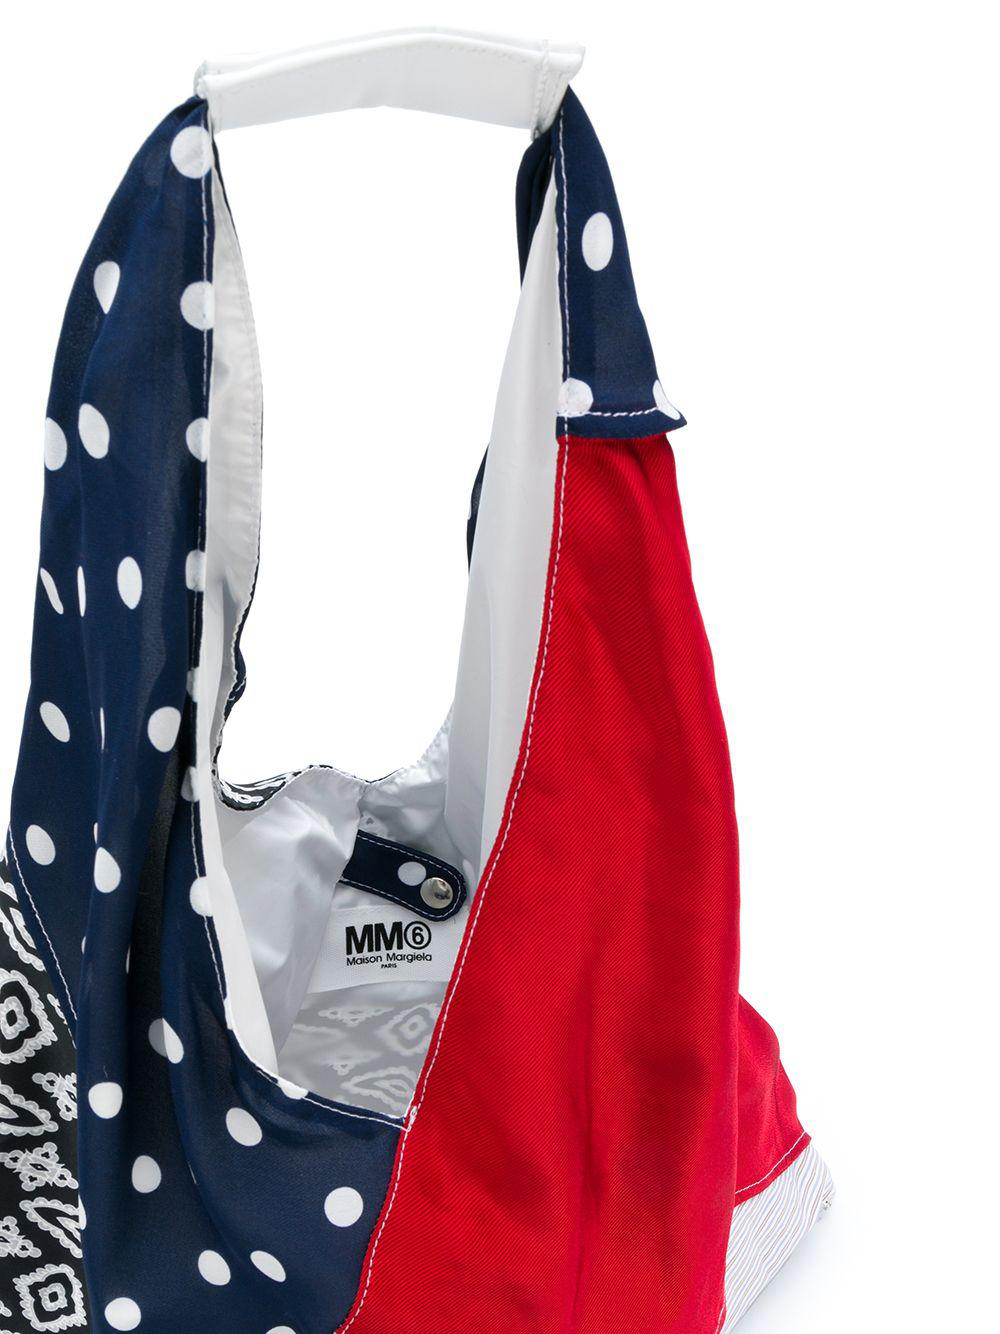 MM6 by Maison Martin Margiela Cotton Patchwork Triangular Tote Bag in Blue